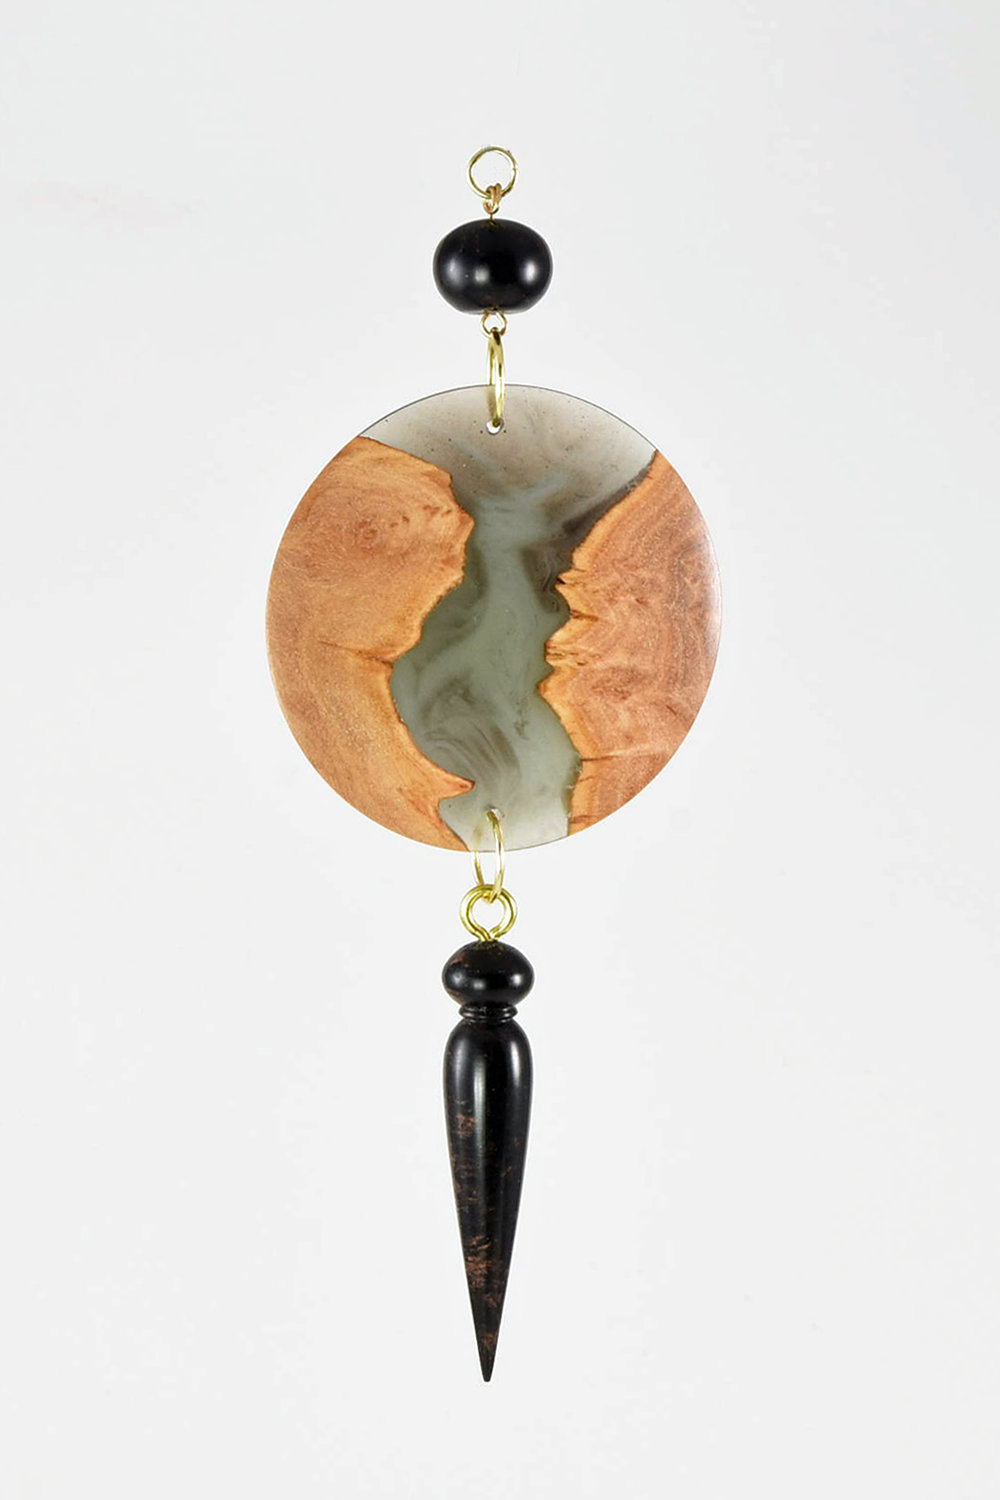 This ornament was made from scraps left over from hollow forms made with burl and cast resin. The medallion has the burl & resin. The bead and pendant are just turned cast resin.   -Bud Hohlfeld